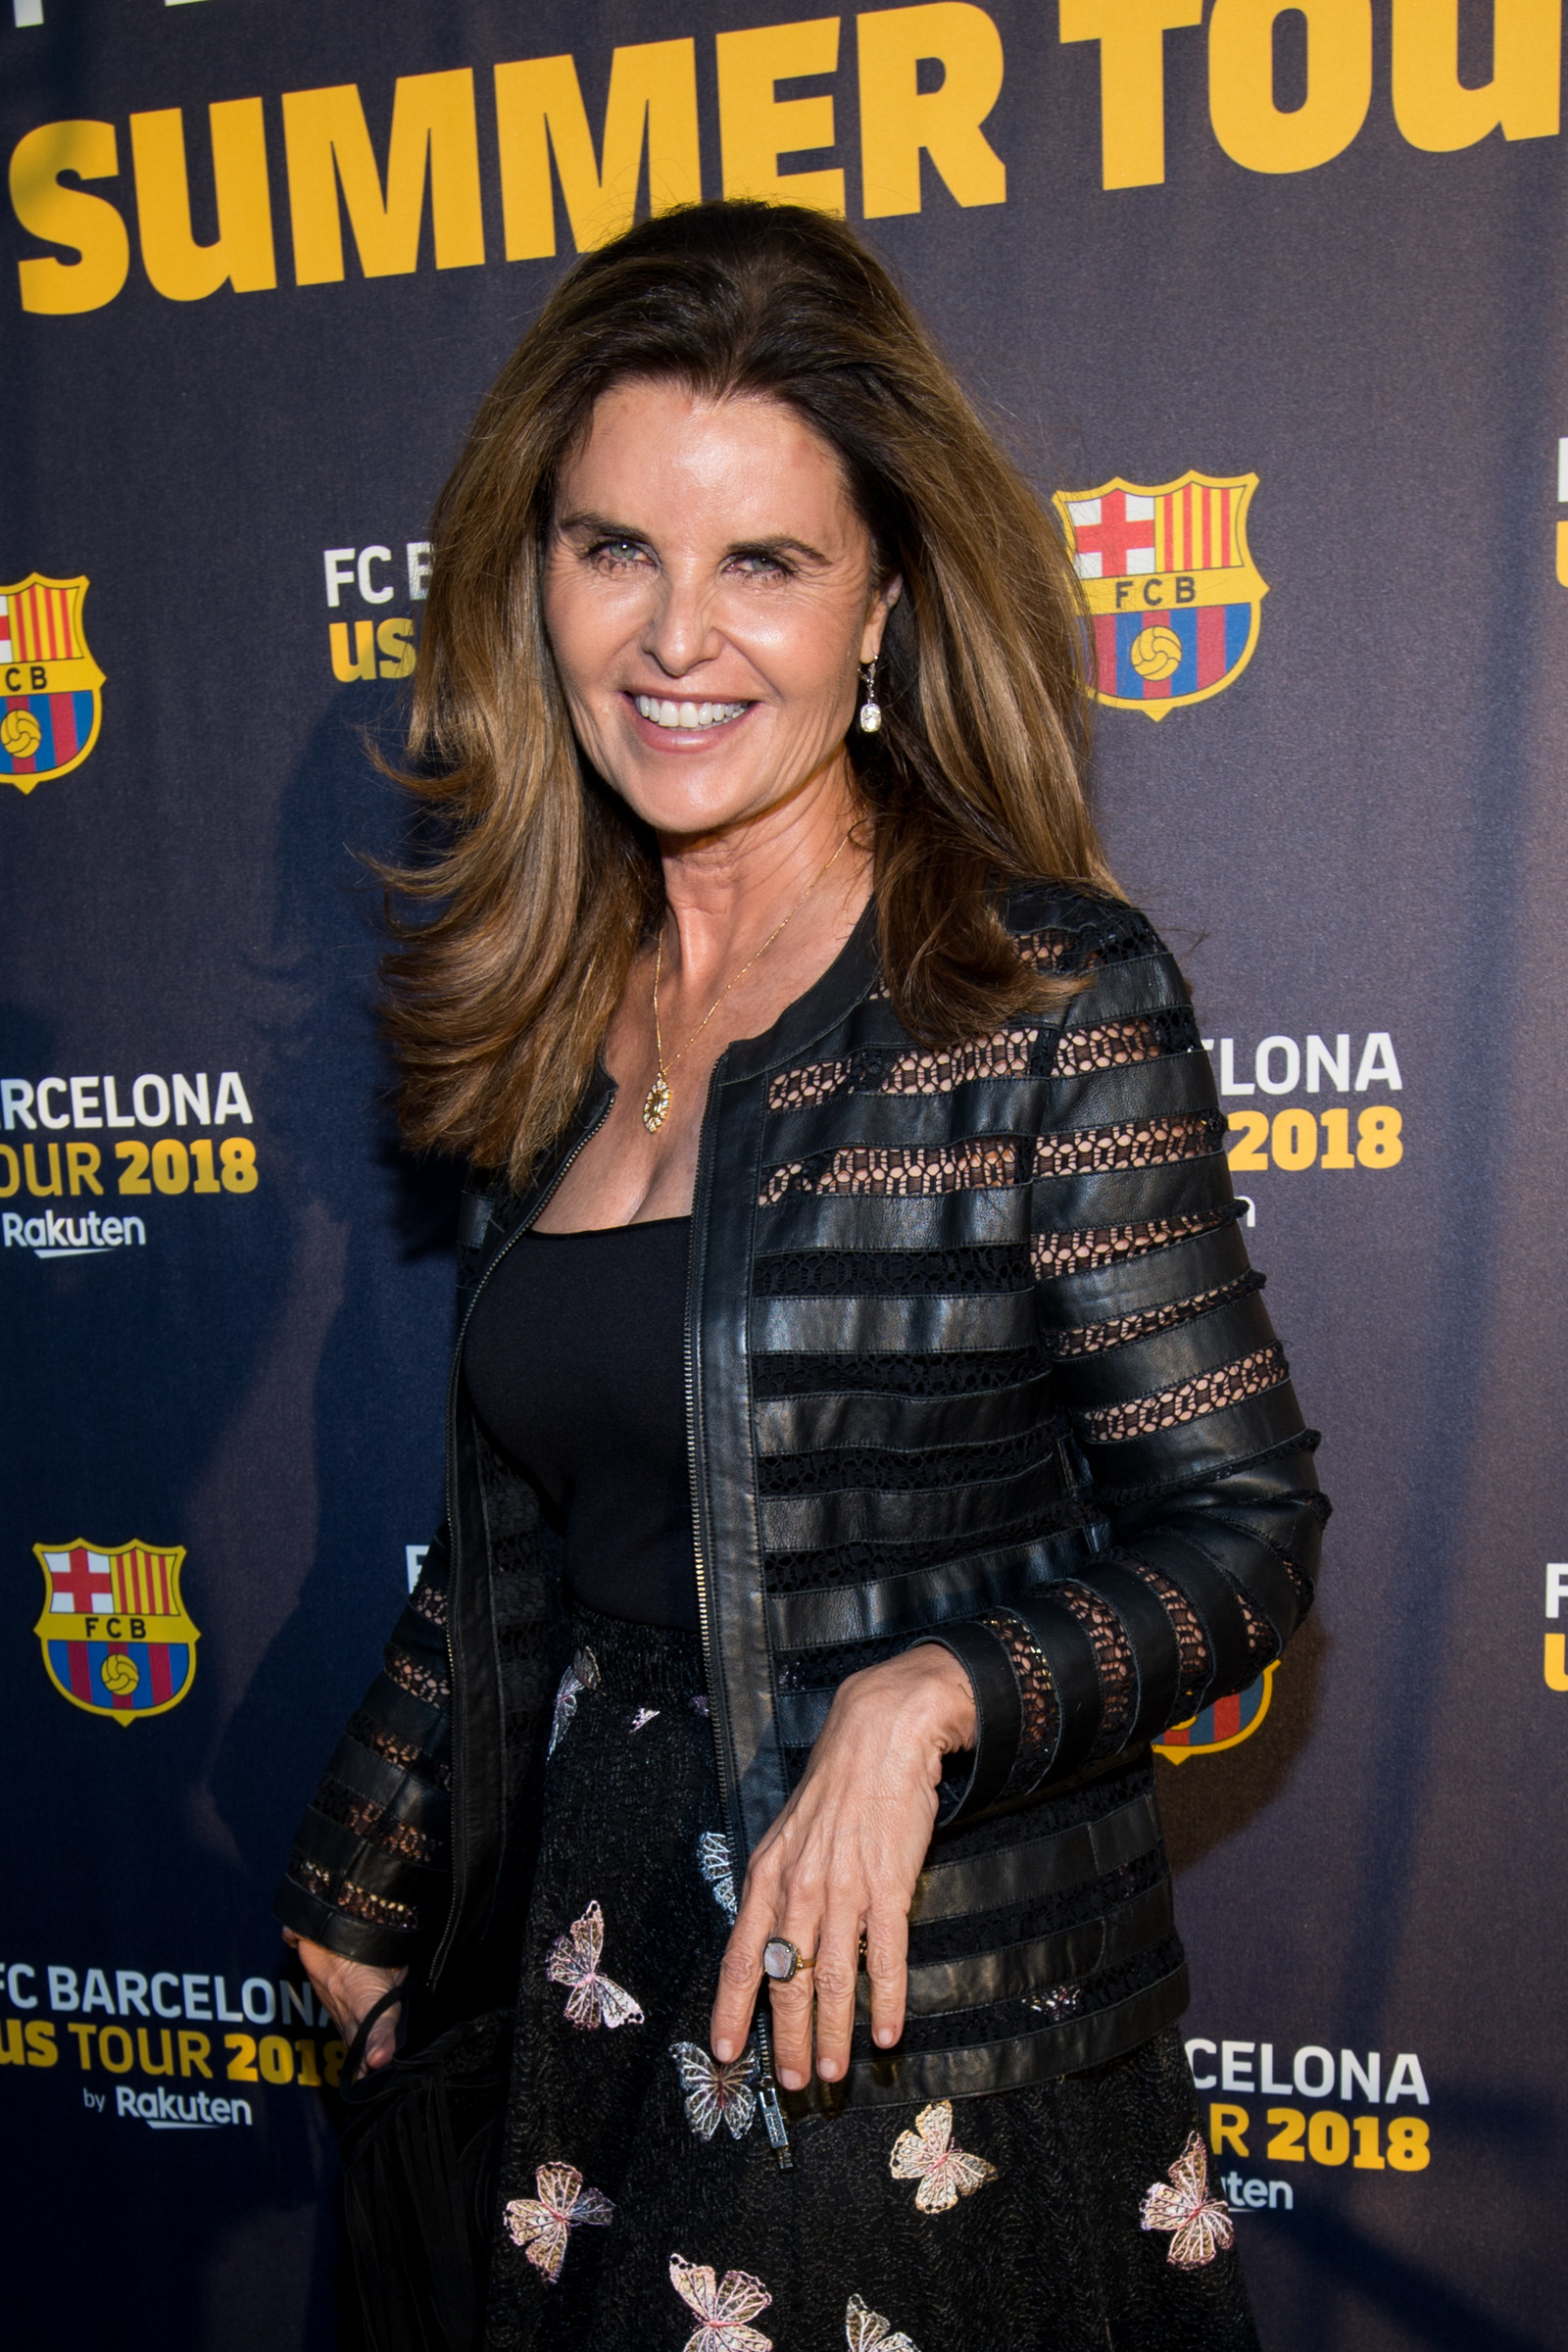 Her mother, Maria Shriver, has had a long career in media.